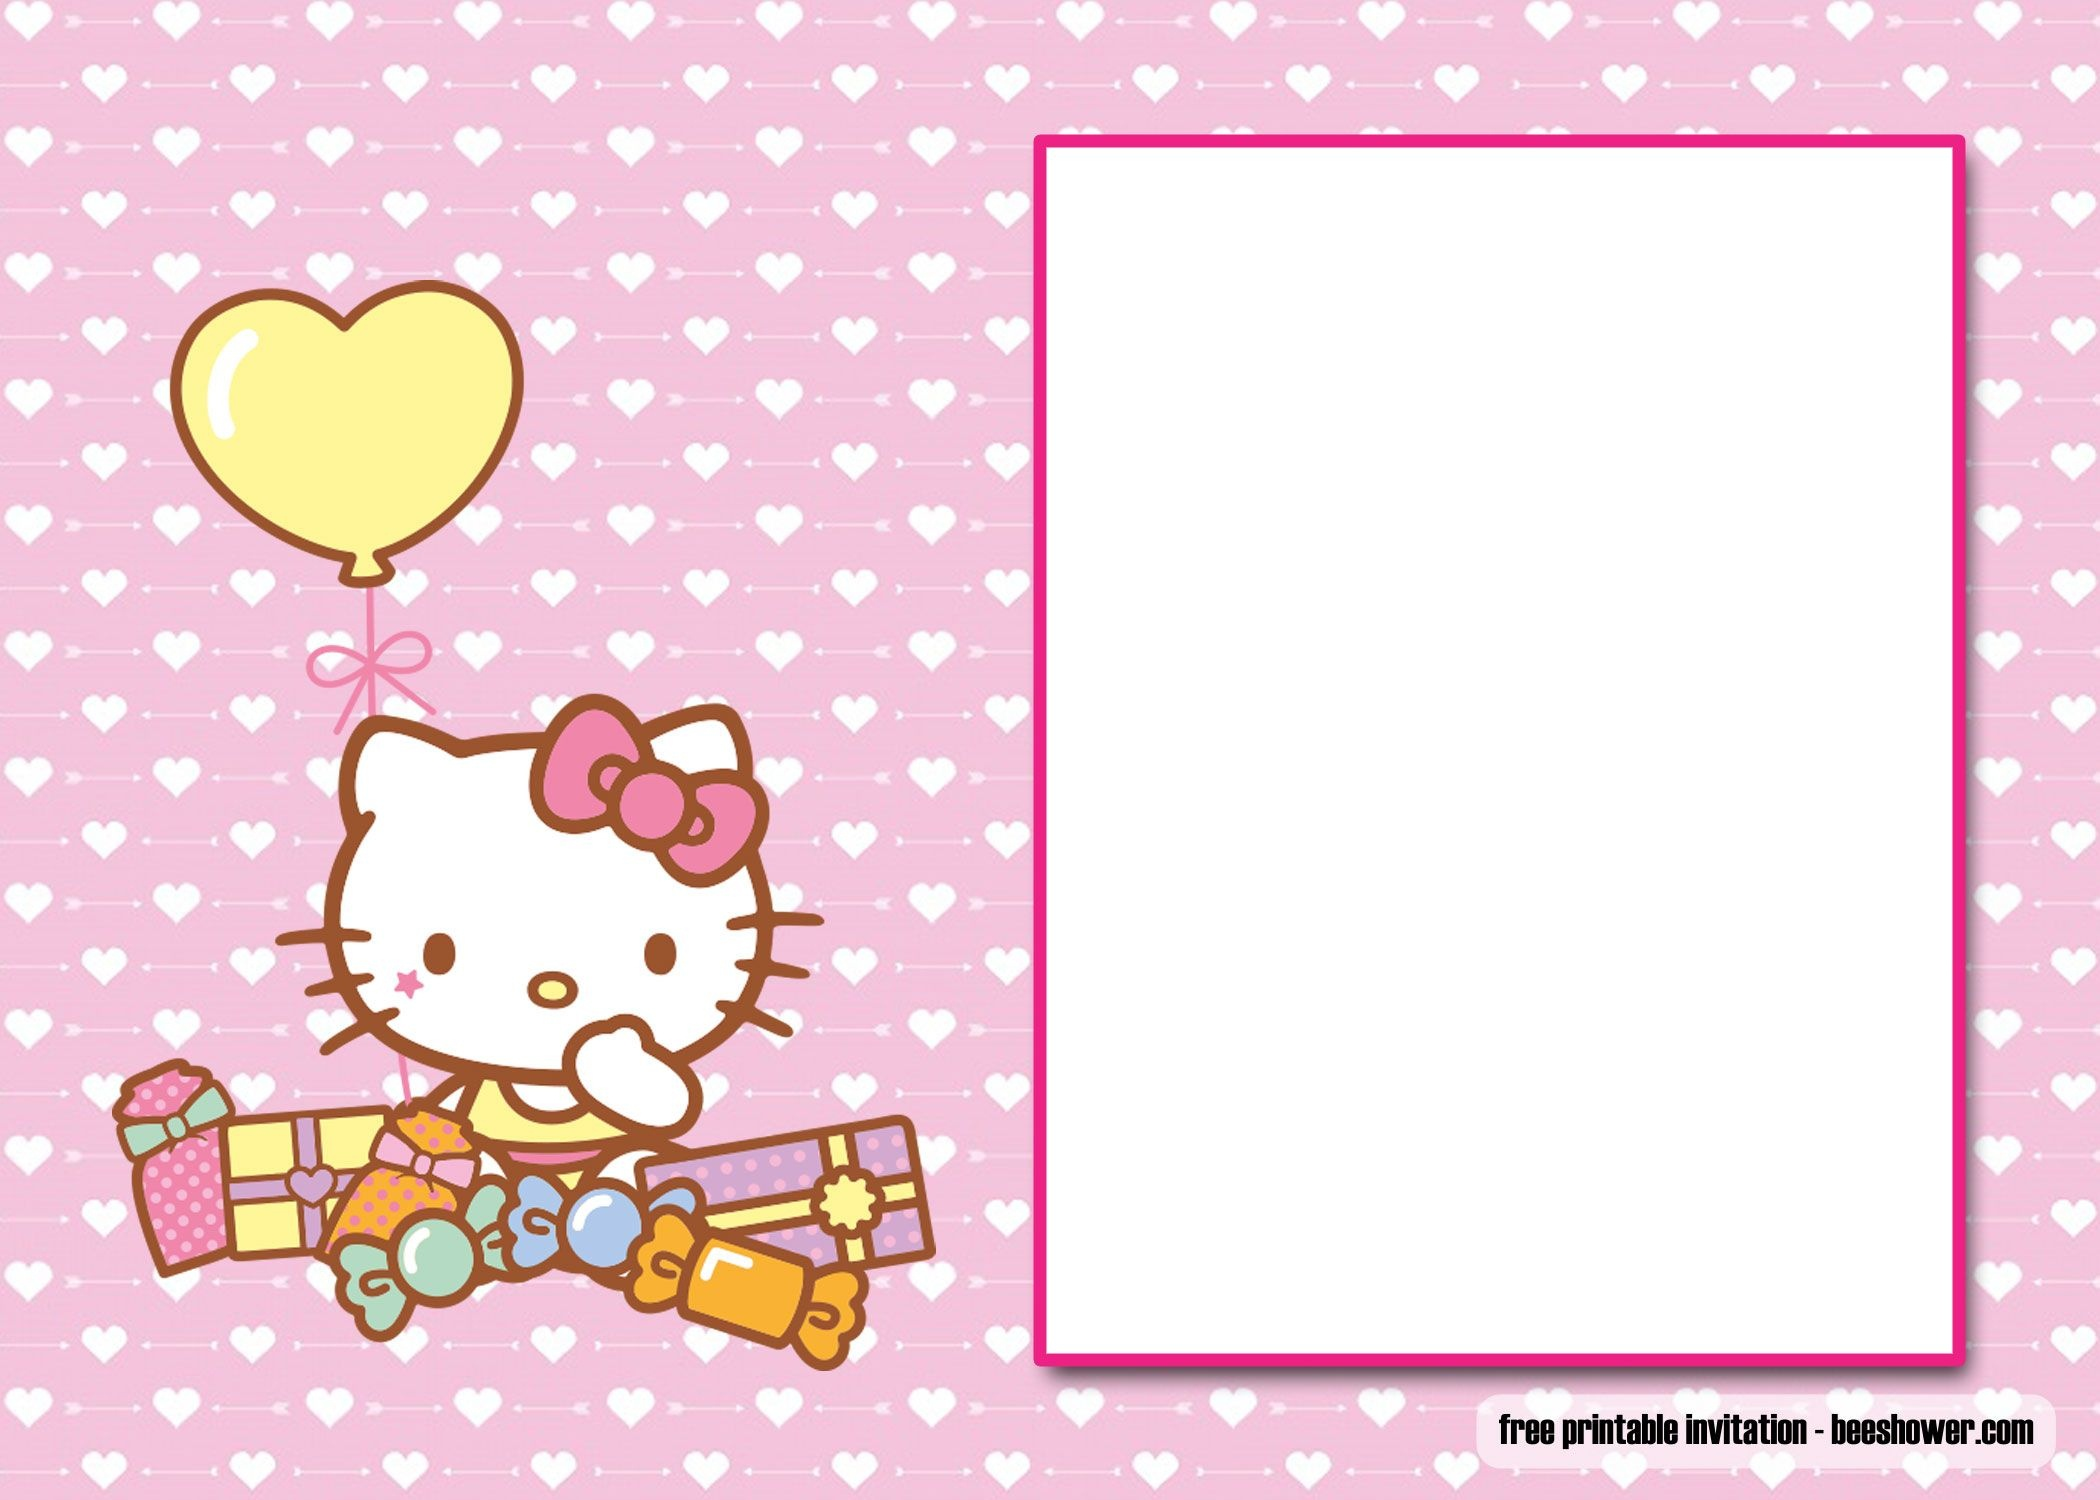 Free Free Perfect Hello Kitty Baby Shower Invitations | Beeshower - Free Printable Hello Kitty Baby Shower Invitations